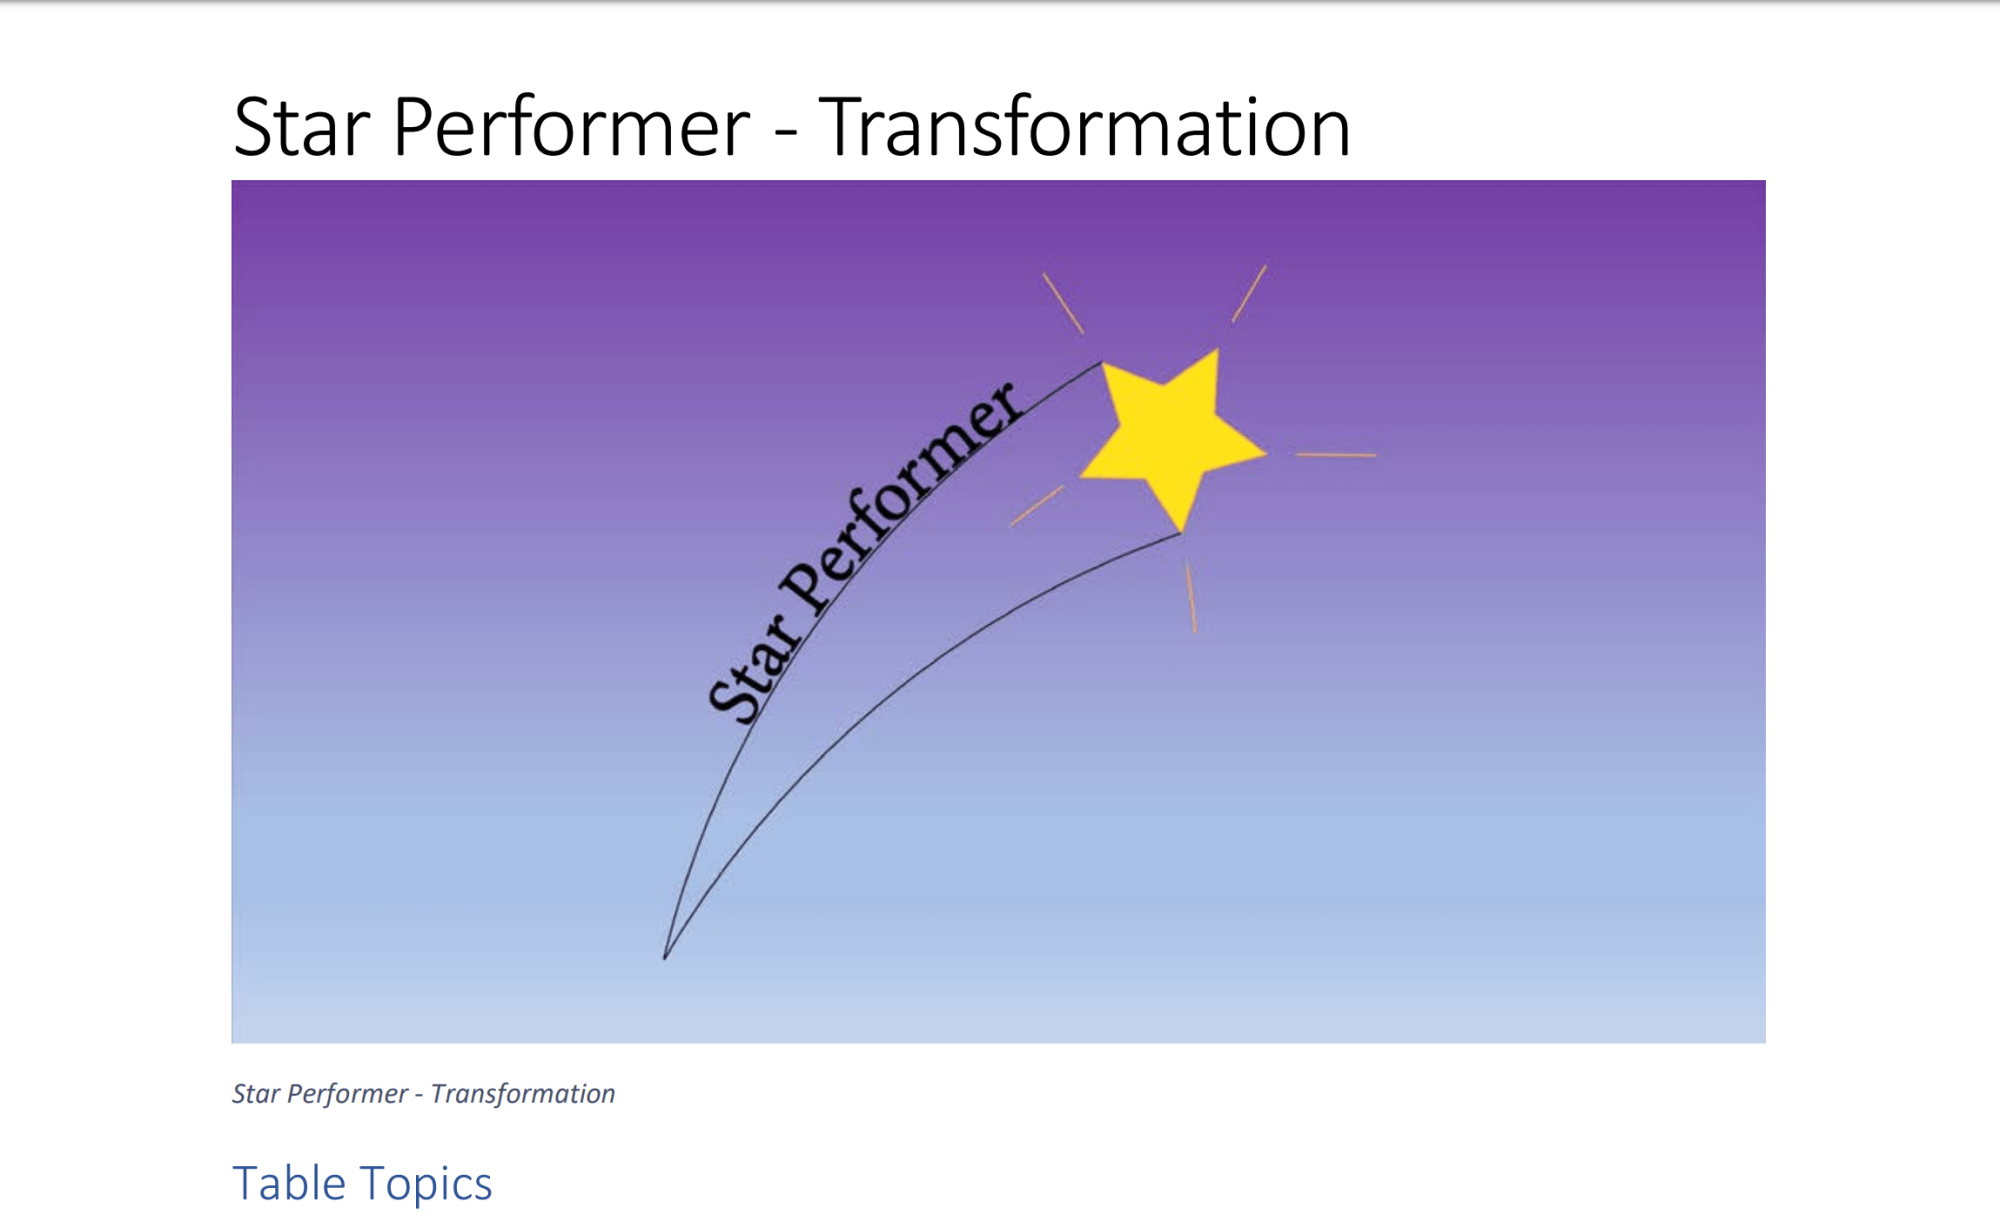 Star Performer Transformation Table Topics. Copyright 2018 by Steve J Davis. All Rights Reserved. https://starperformer.info